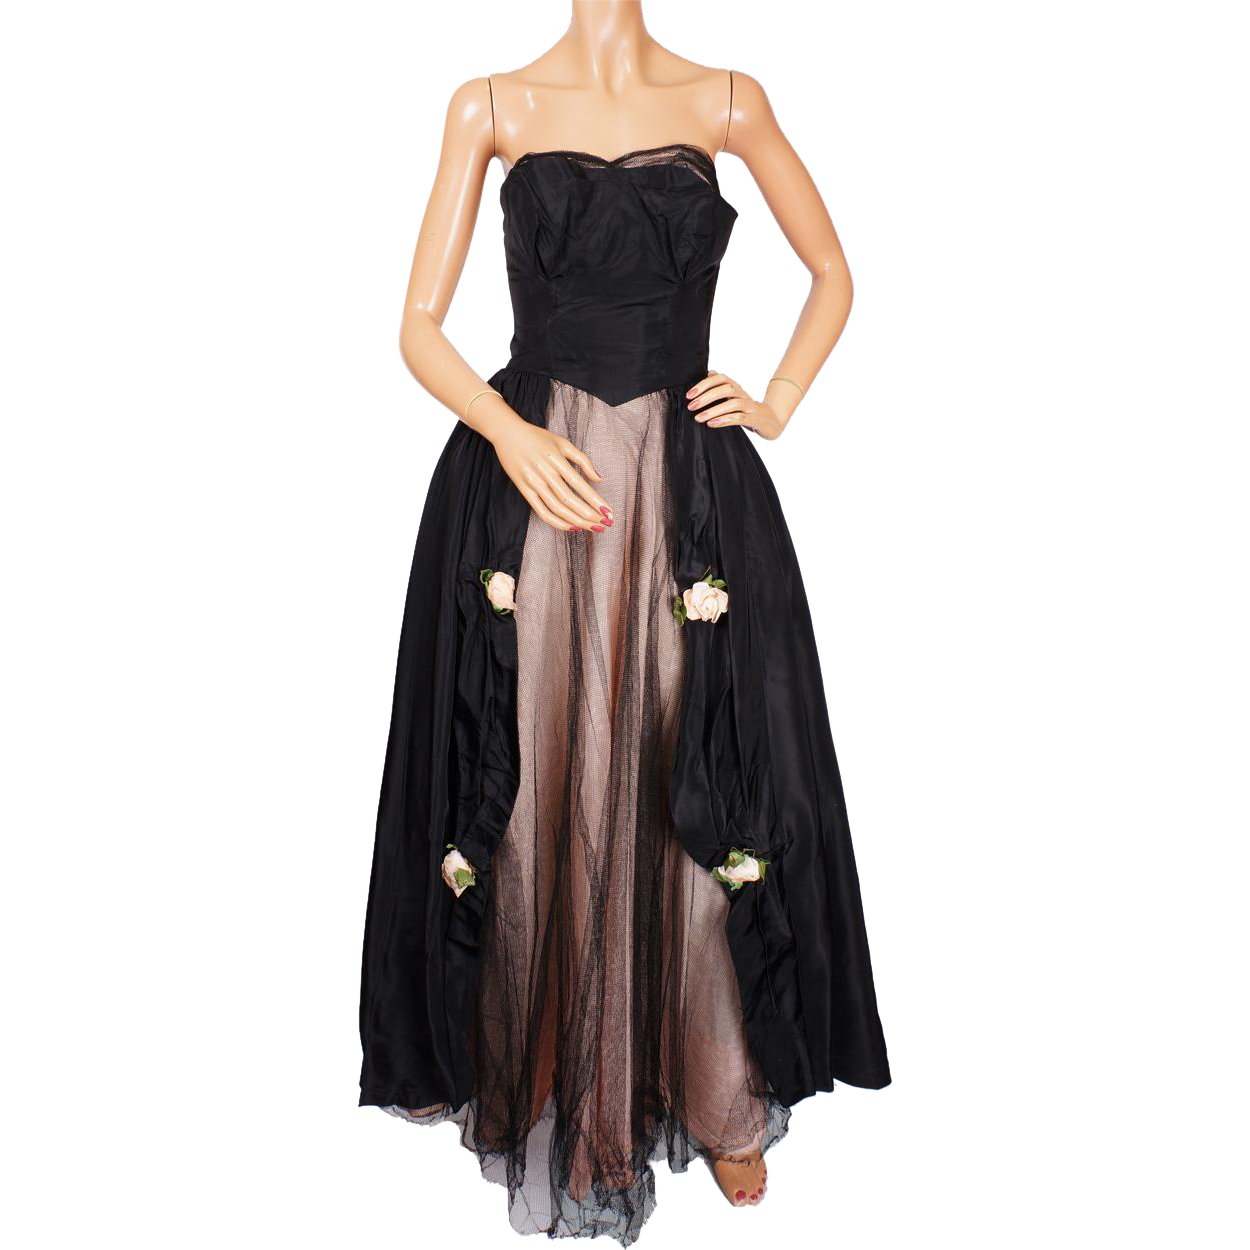 Vintage Wedding Dresses Nyc: Vintage 1950s Black Tulle Gown By Harry Keiser